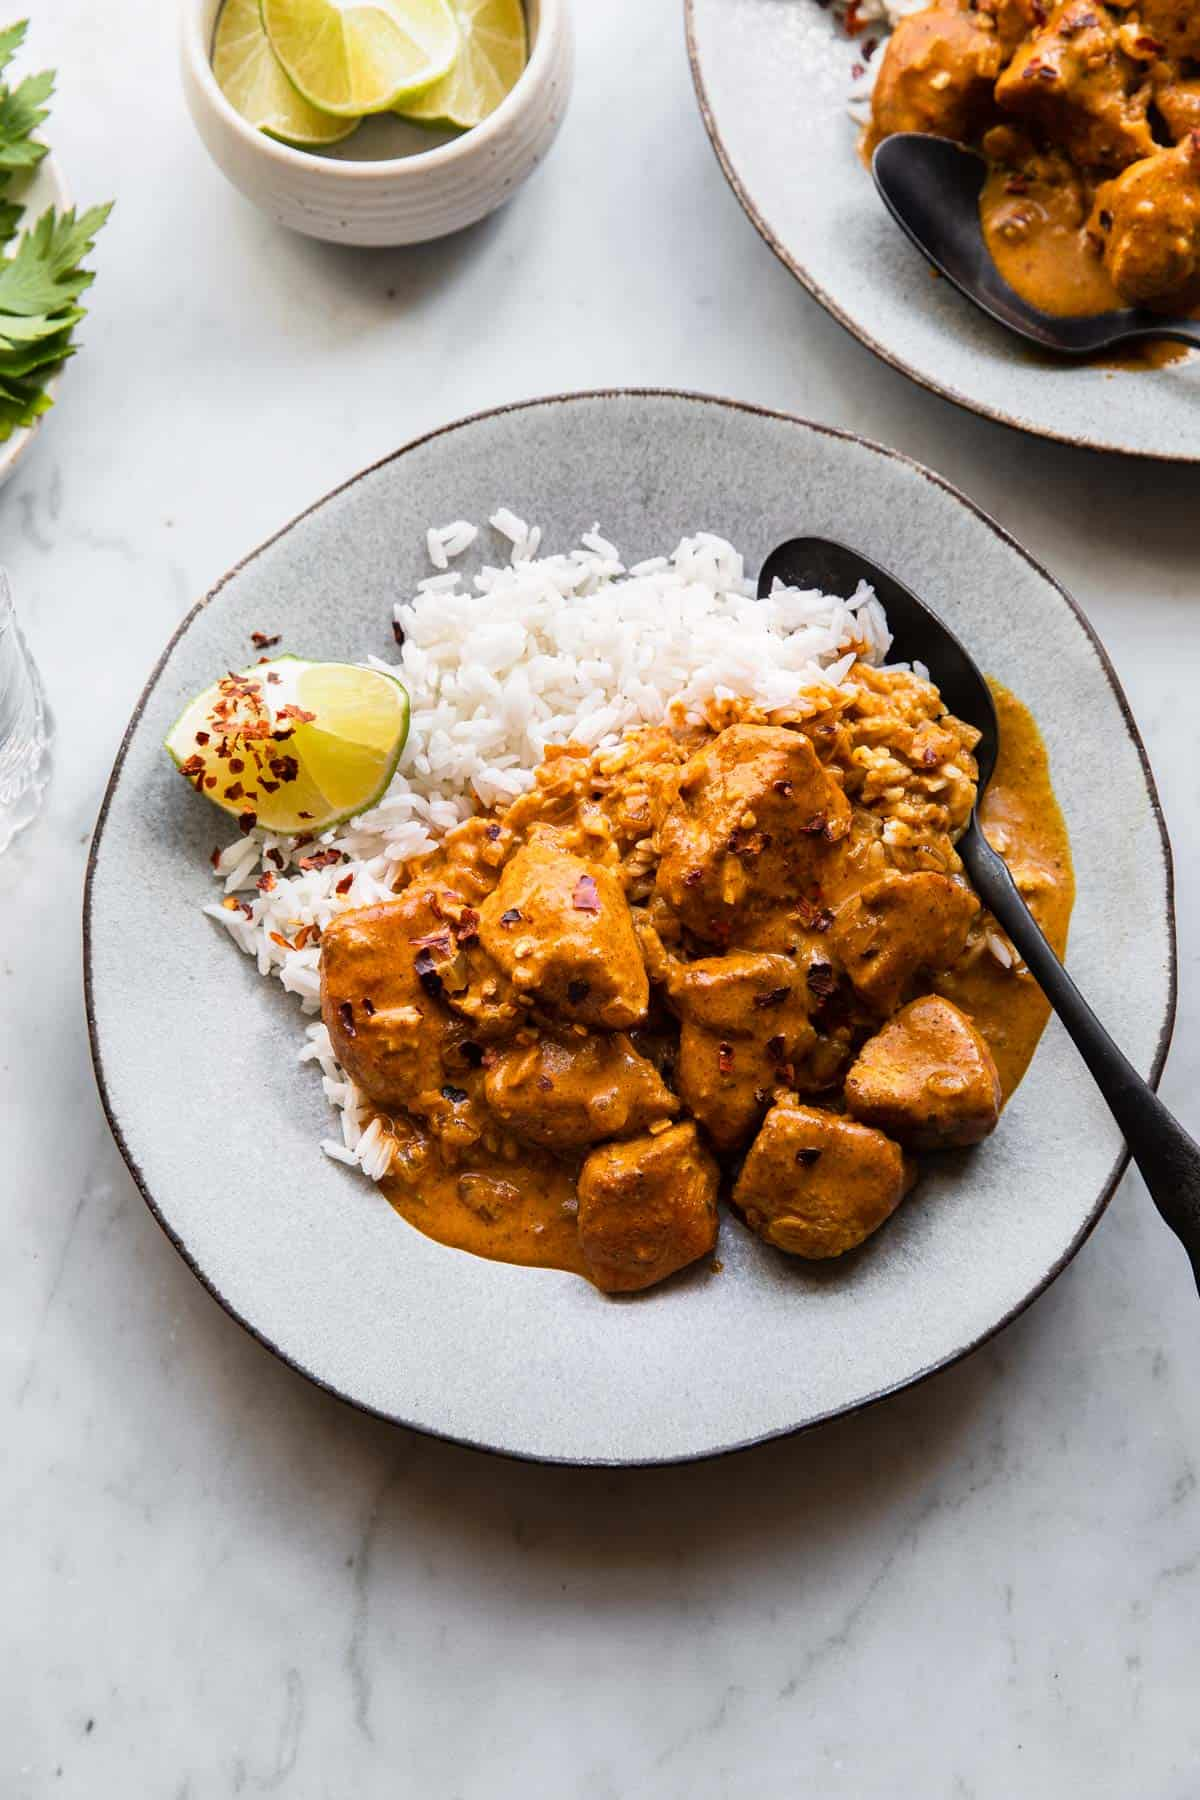 A plate of curry chicken with rice.